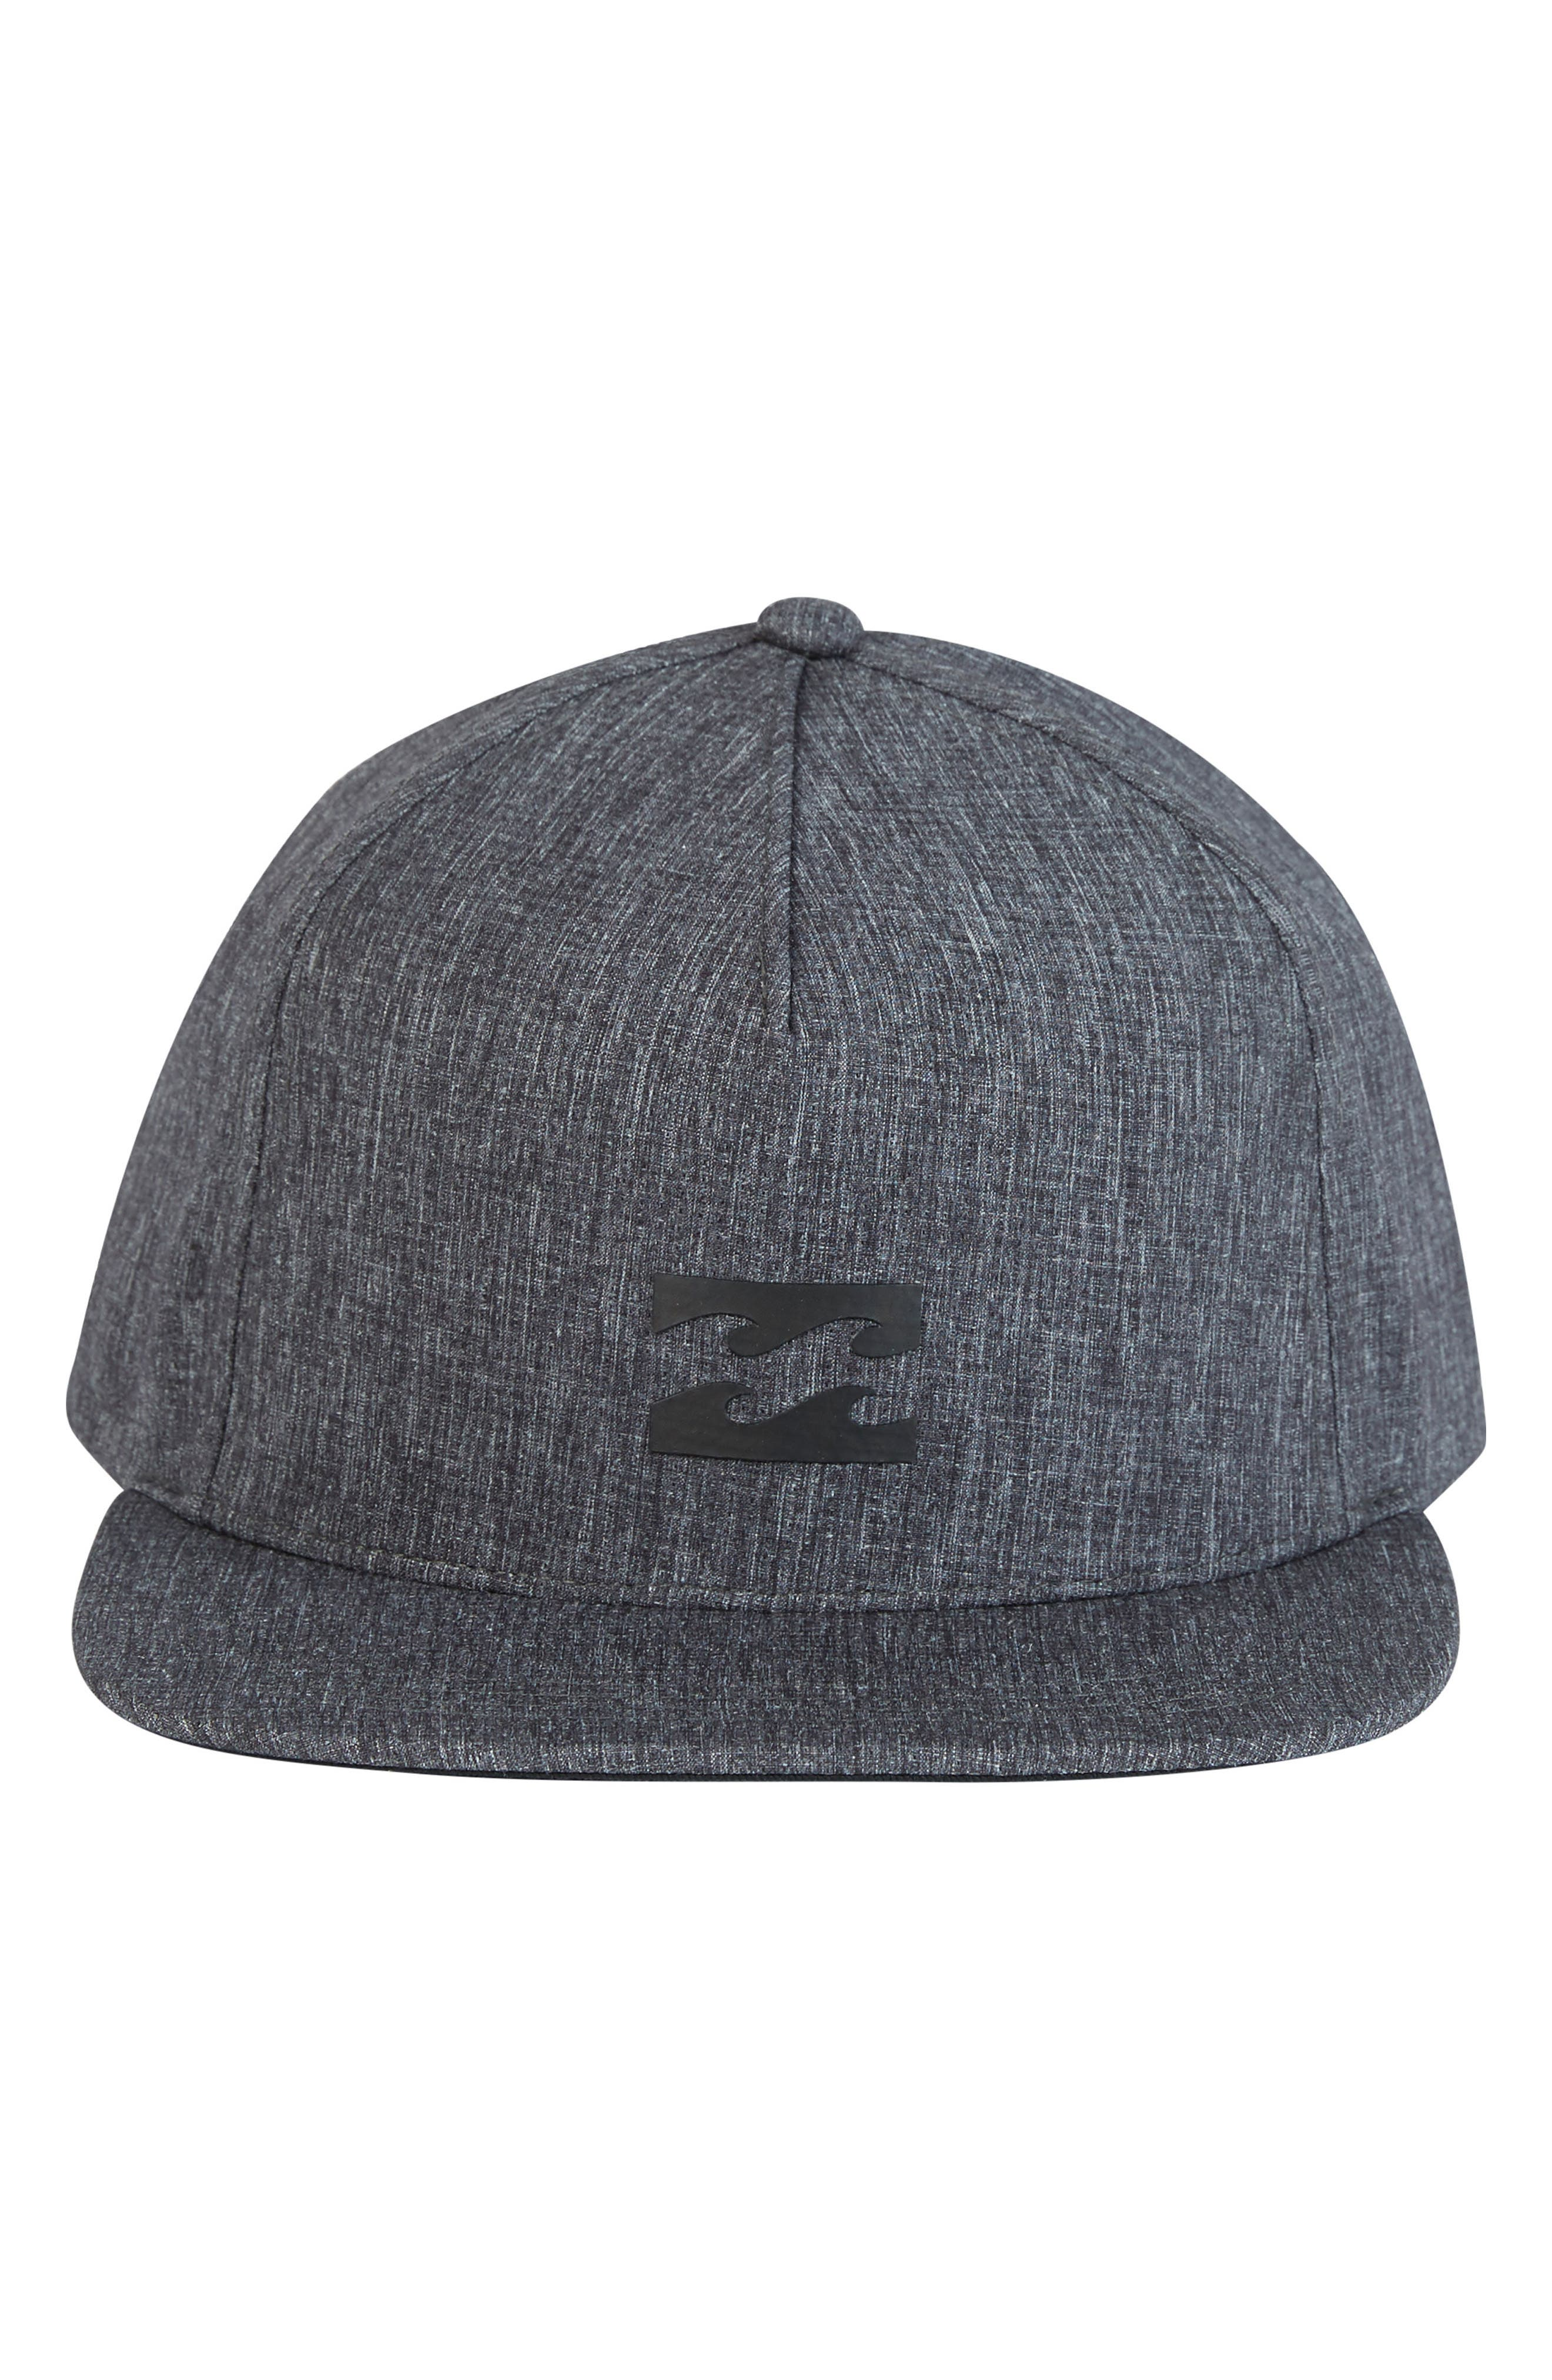 Airlite Baseball Cap,                             Alternate thumbnail 3, color,